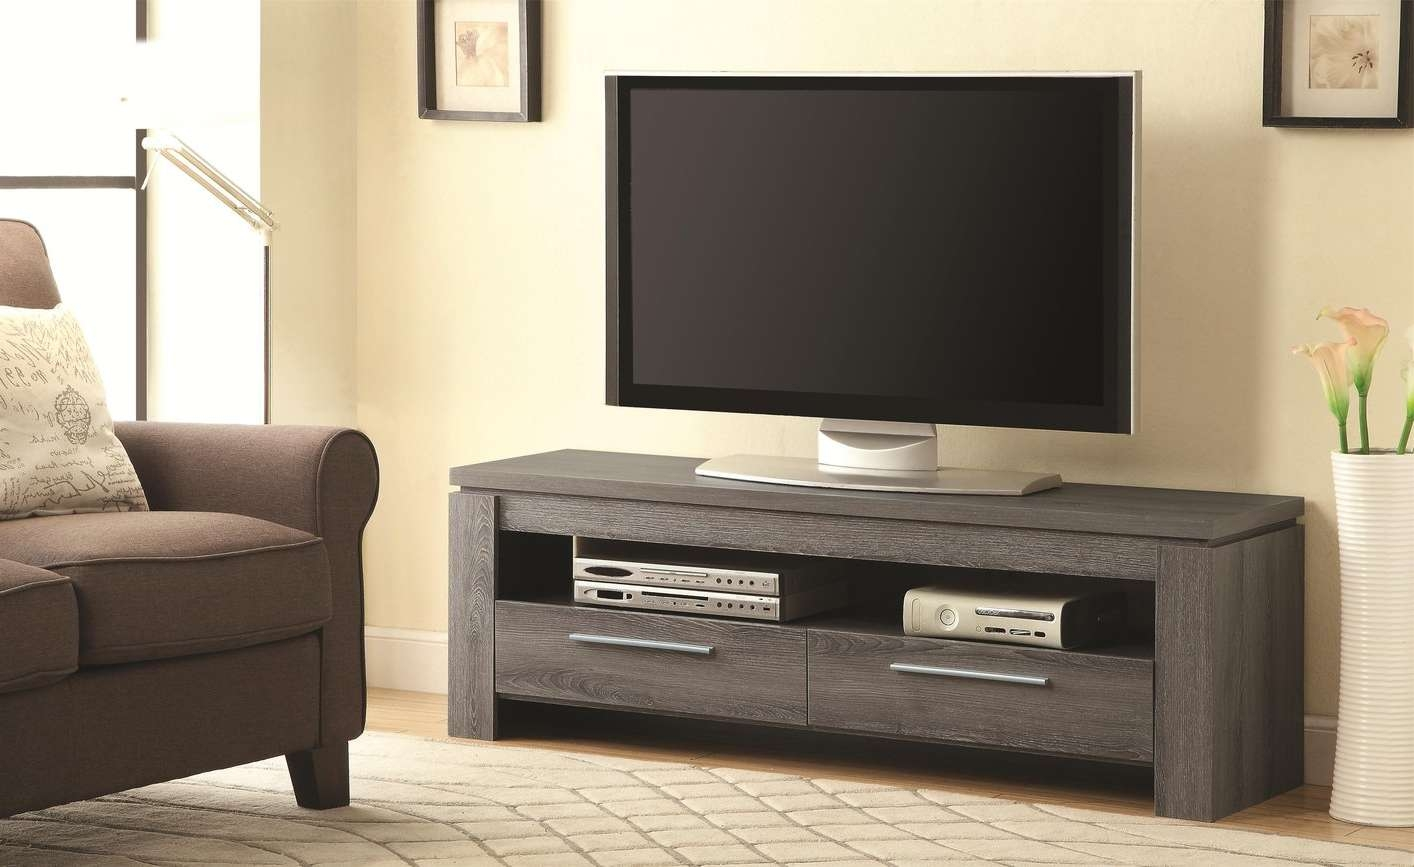 Grey Wood Tv Stand – Steal A Sofa Furniture Outlet Los Angeles Ca For Grey Tv Stands (View 5 of 15)